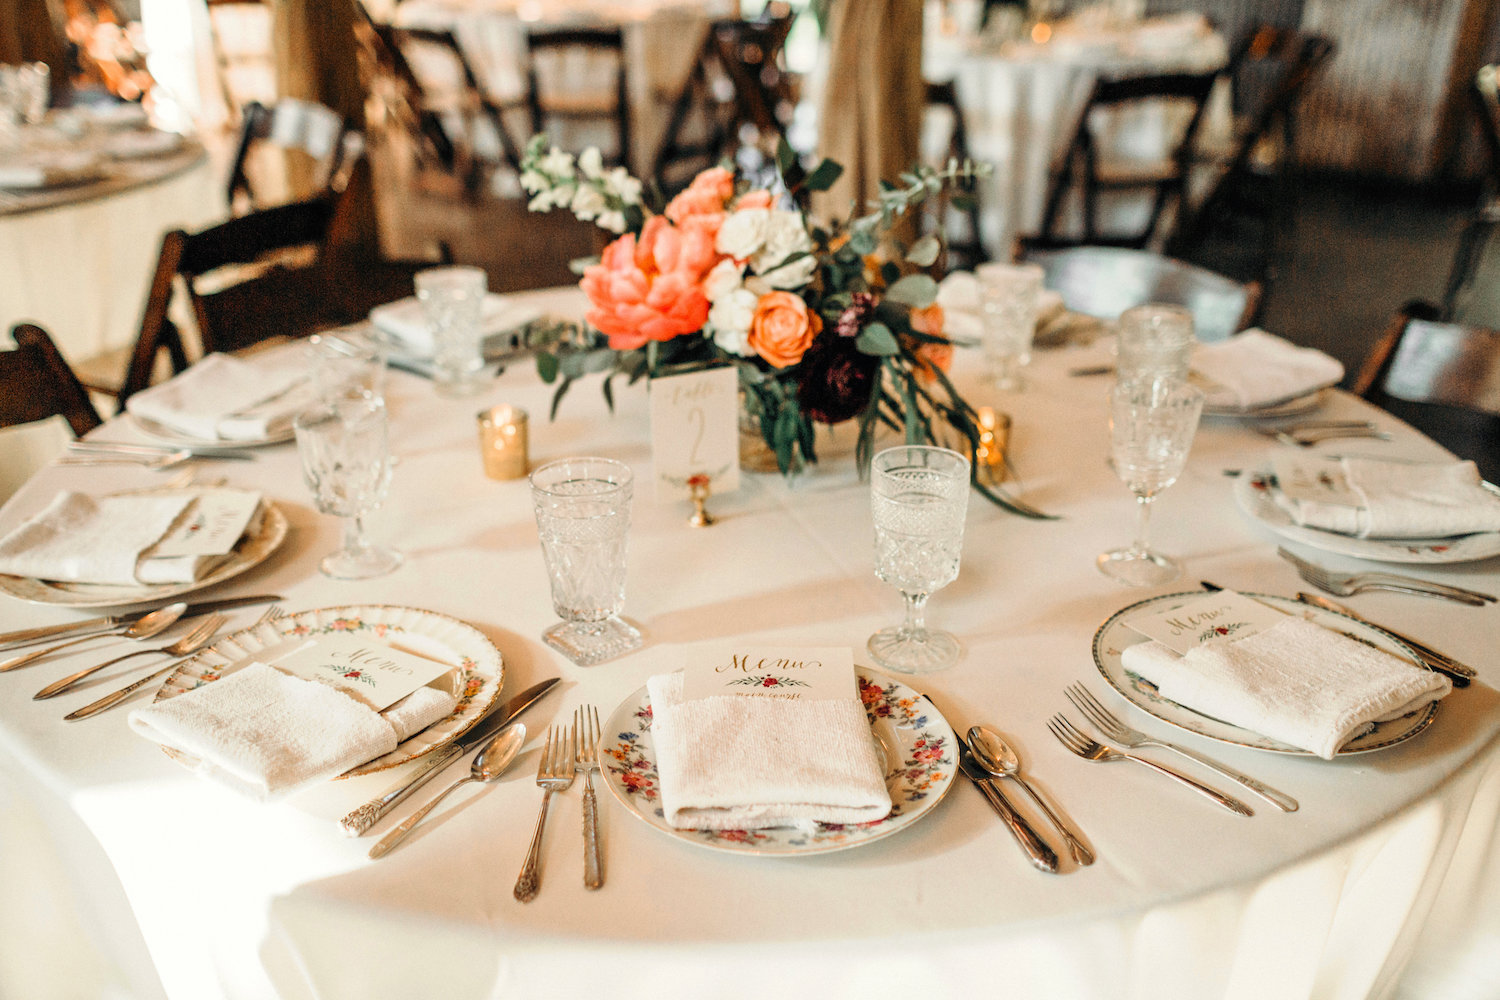 Rustic wedding table with vintage plates and glasses